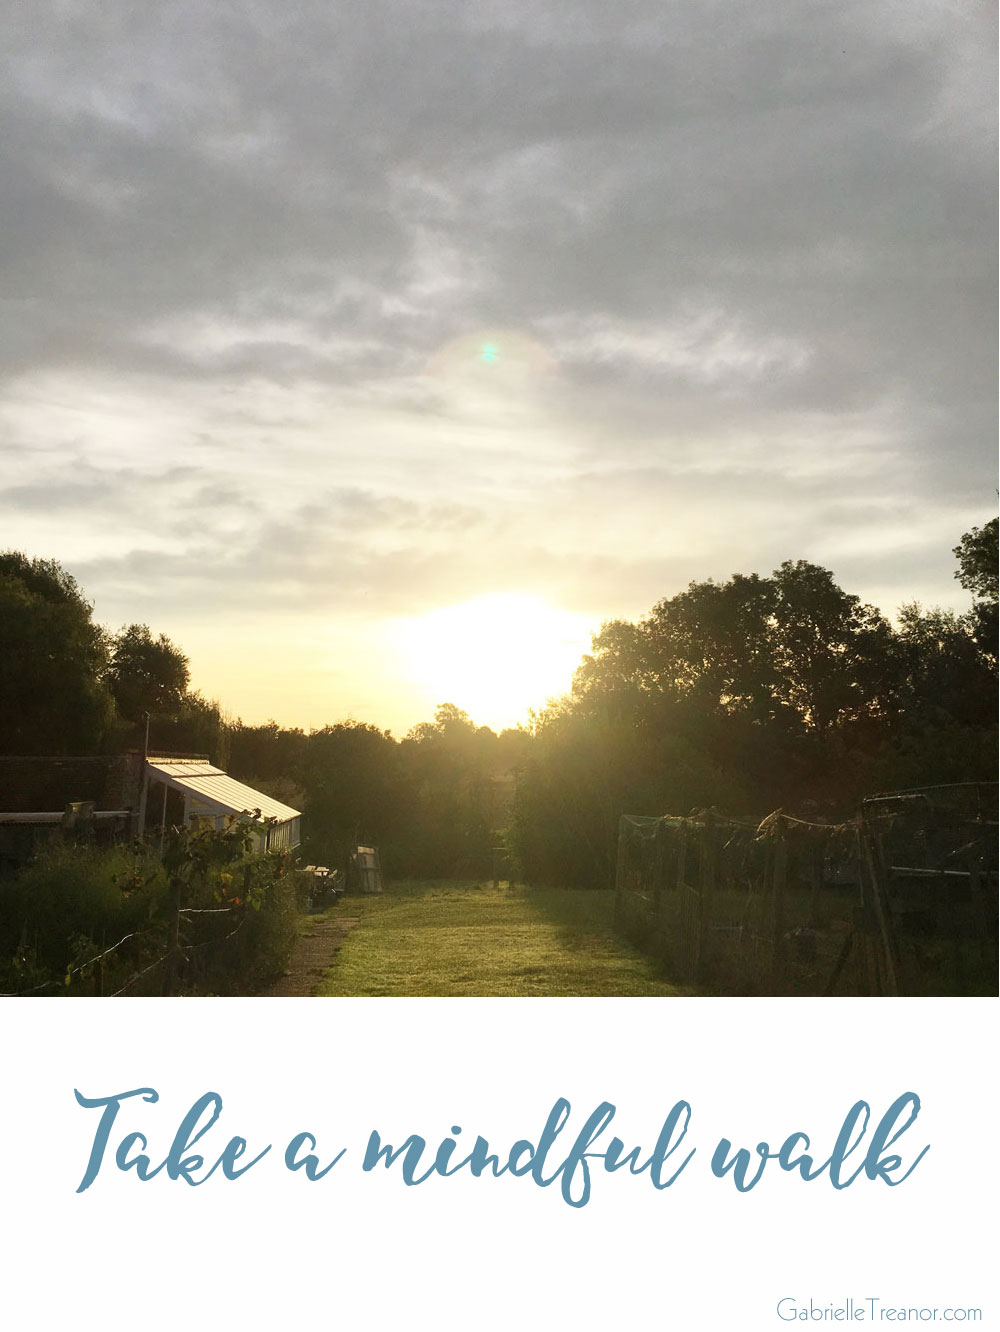 Learn how to use mindfulness to take a mindful walk GabrielleTreanor.com